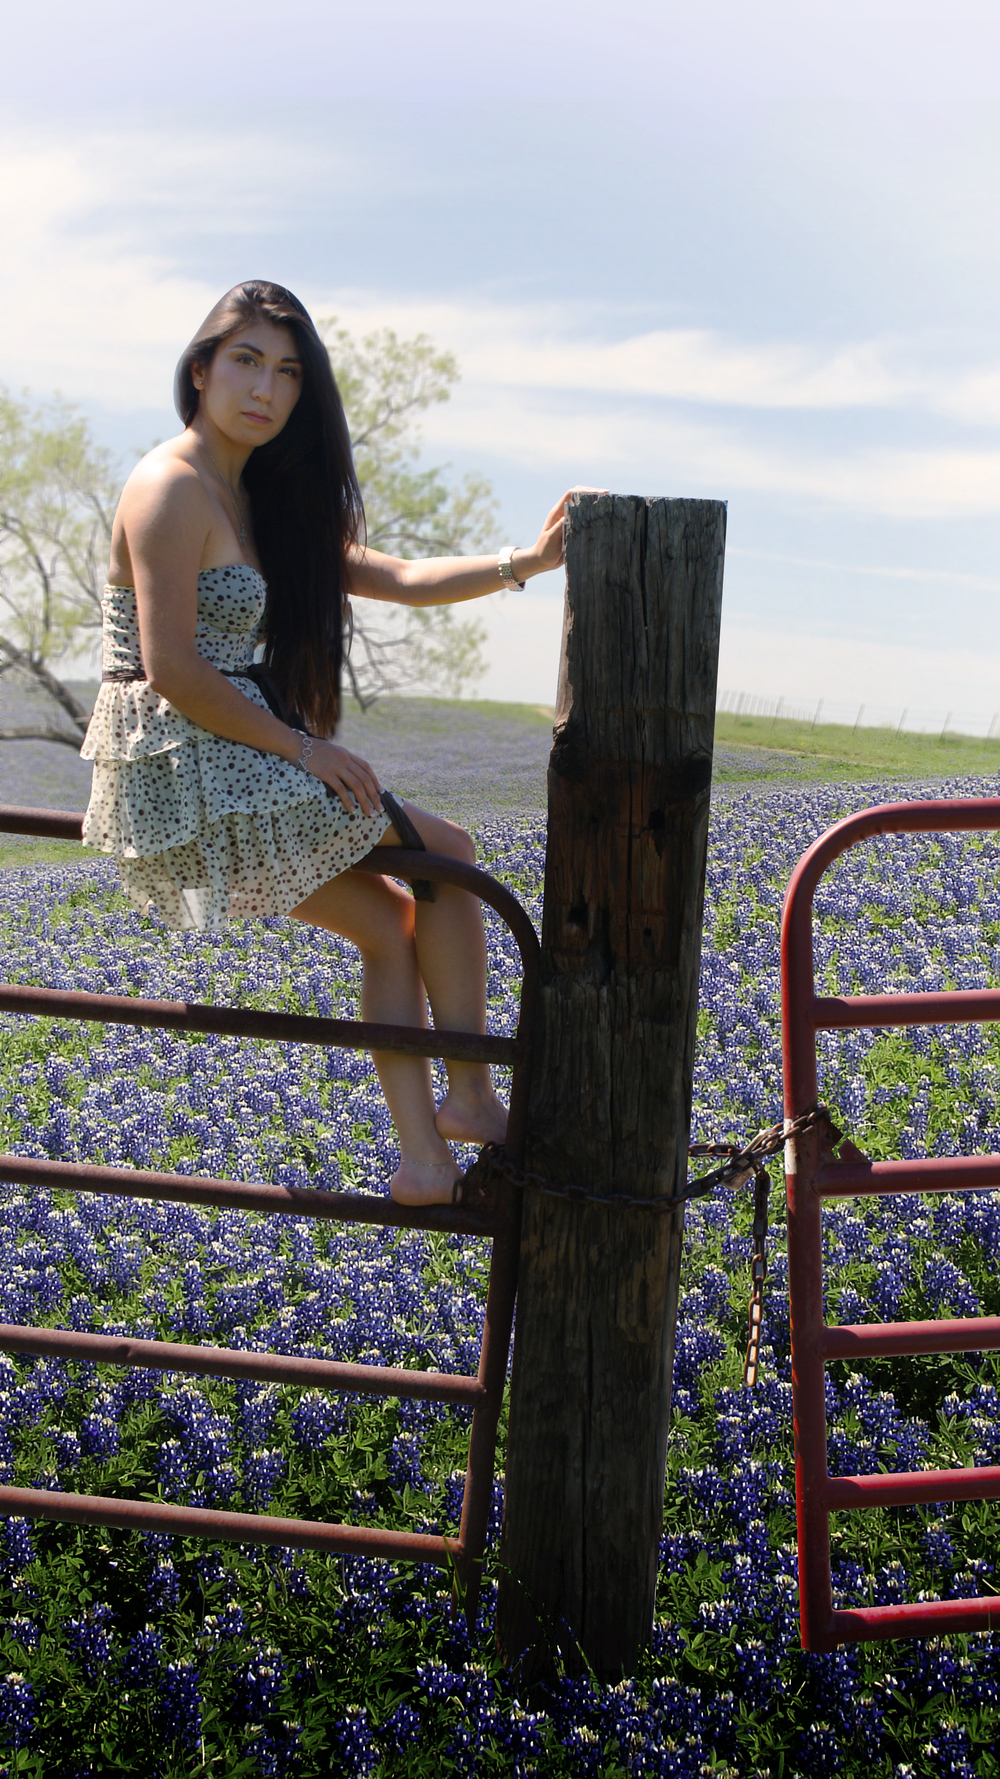 Stephanie-in-bluebonnet-field.jpg